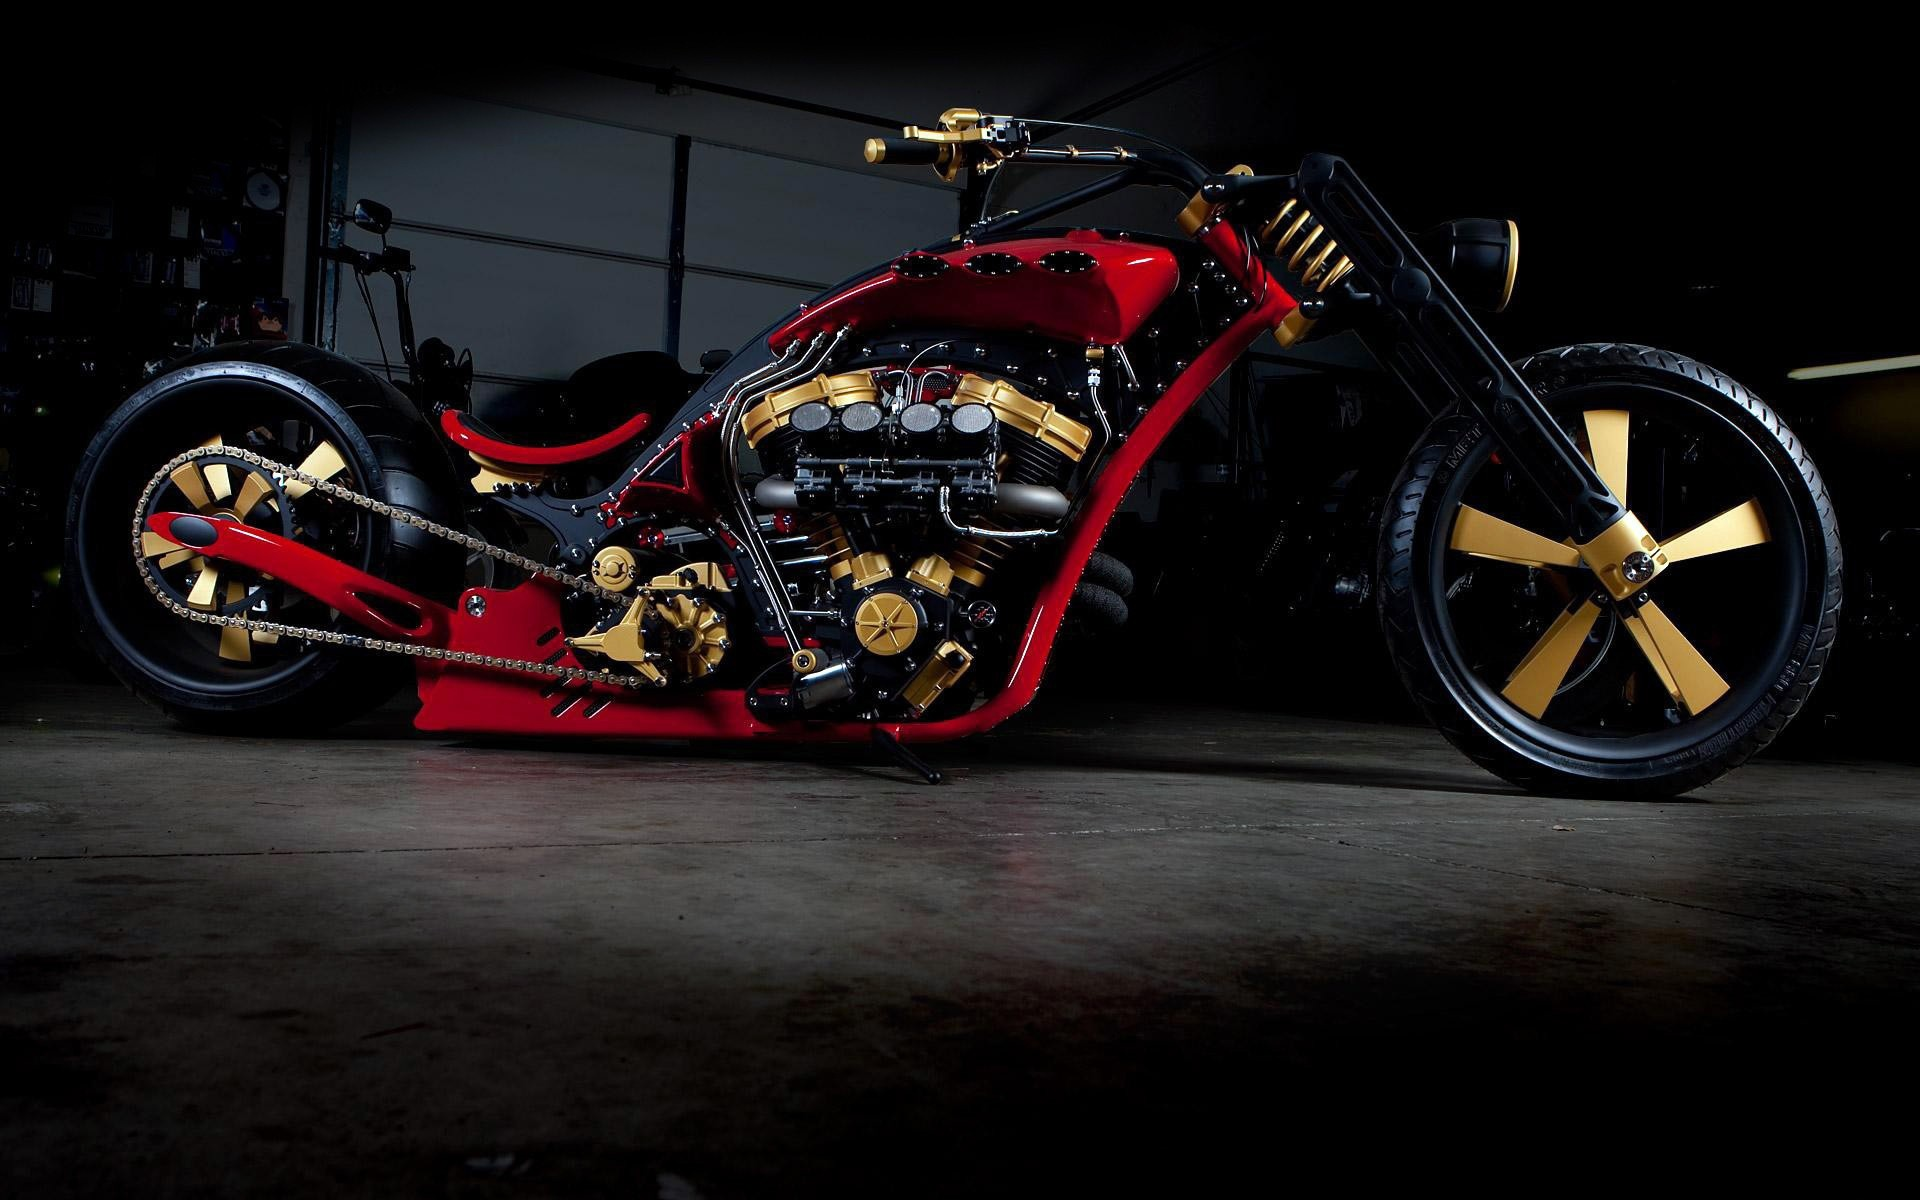 Res: 1920x1200, Bobber Motorcycle Iphone Wallpapers, Bobber Motorcycle Images